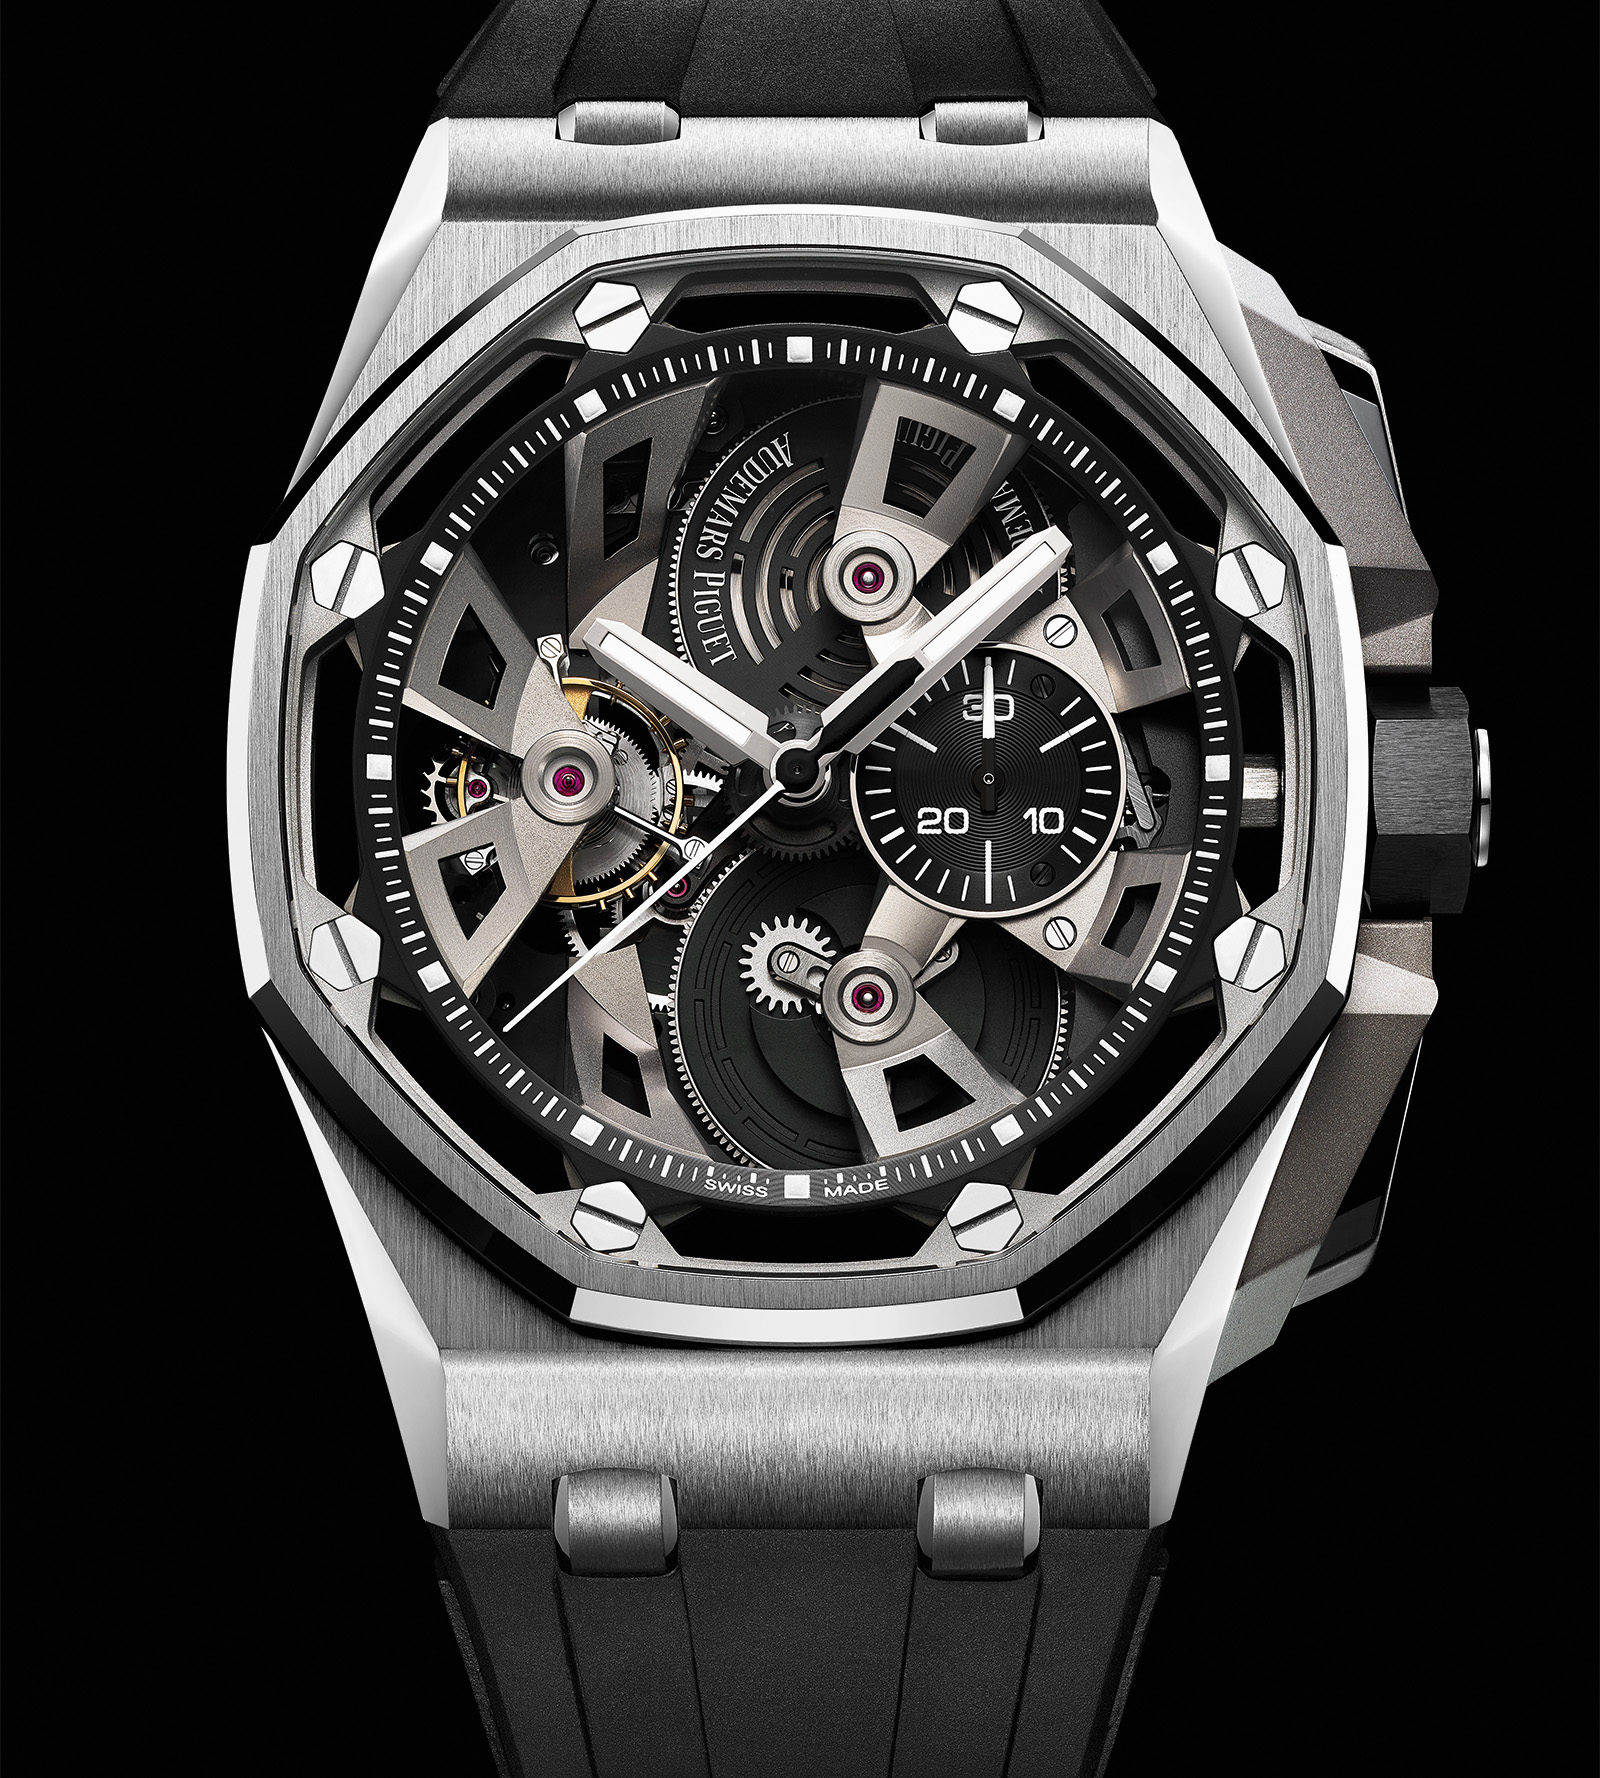 introducing the audemars piguet royal oak offshore tourbillon chronograph 25th anniversary sjx